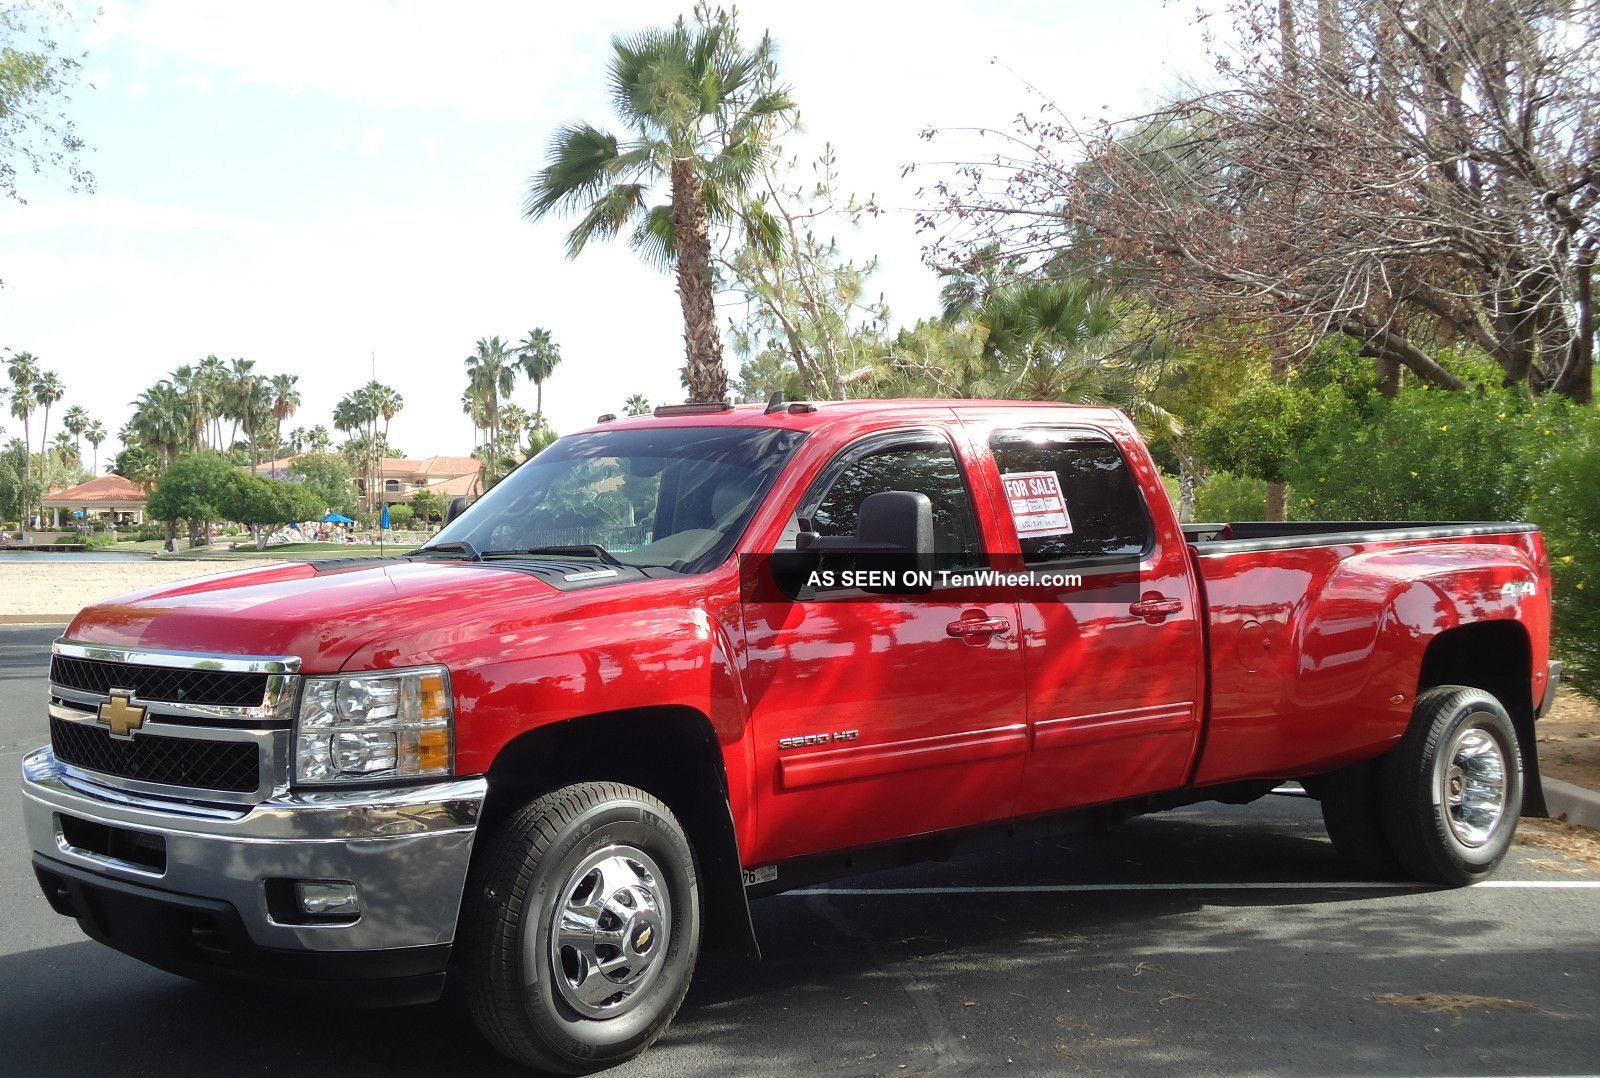 2011 chevrolet silverado 3500 crew cab. Black Bedroom Furniture Sets. Home Design Ideas